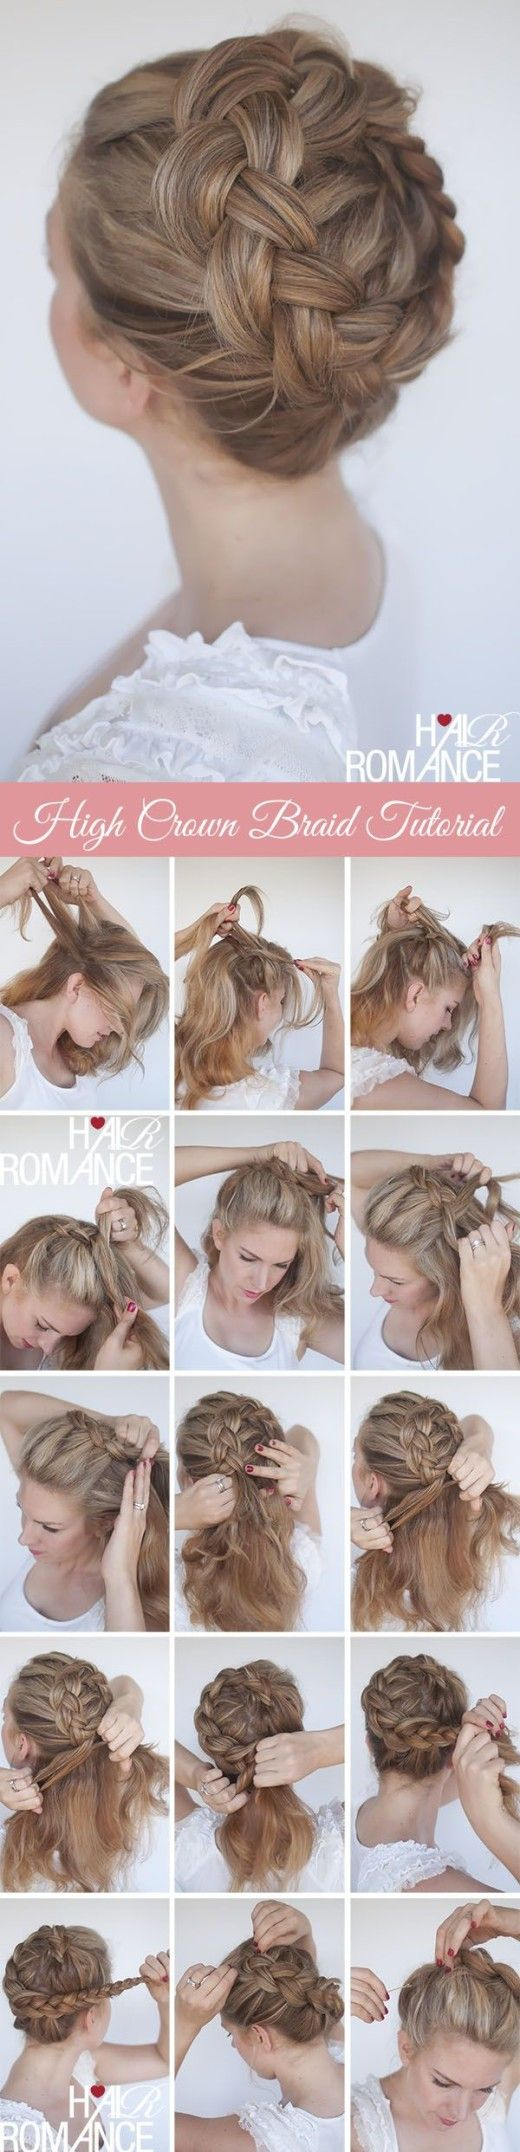 Crown Braided Hairstyle. NEED TO TRY:):):):)